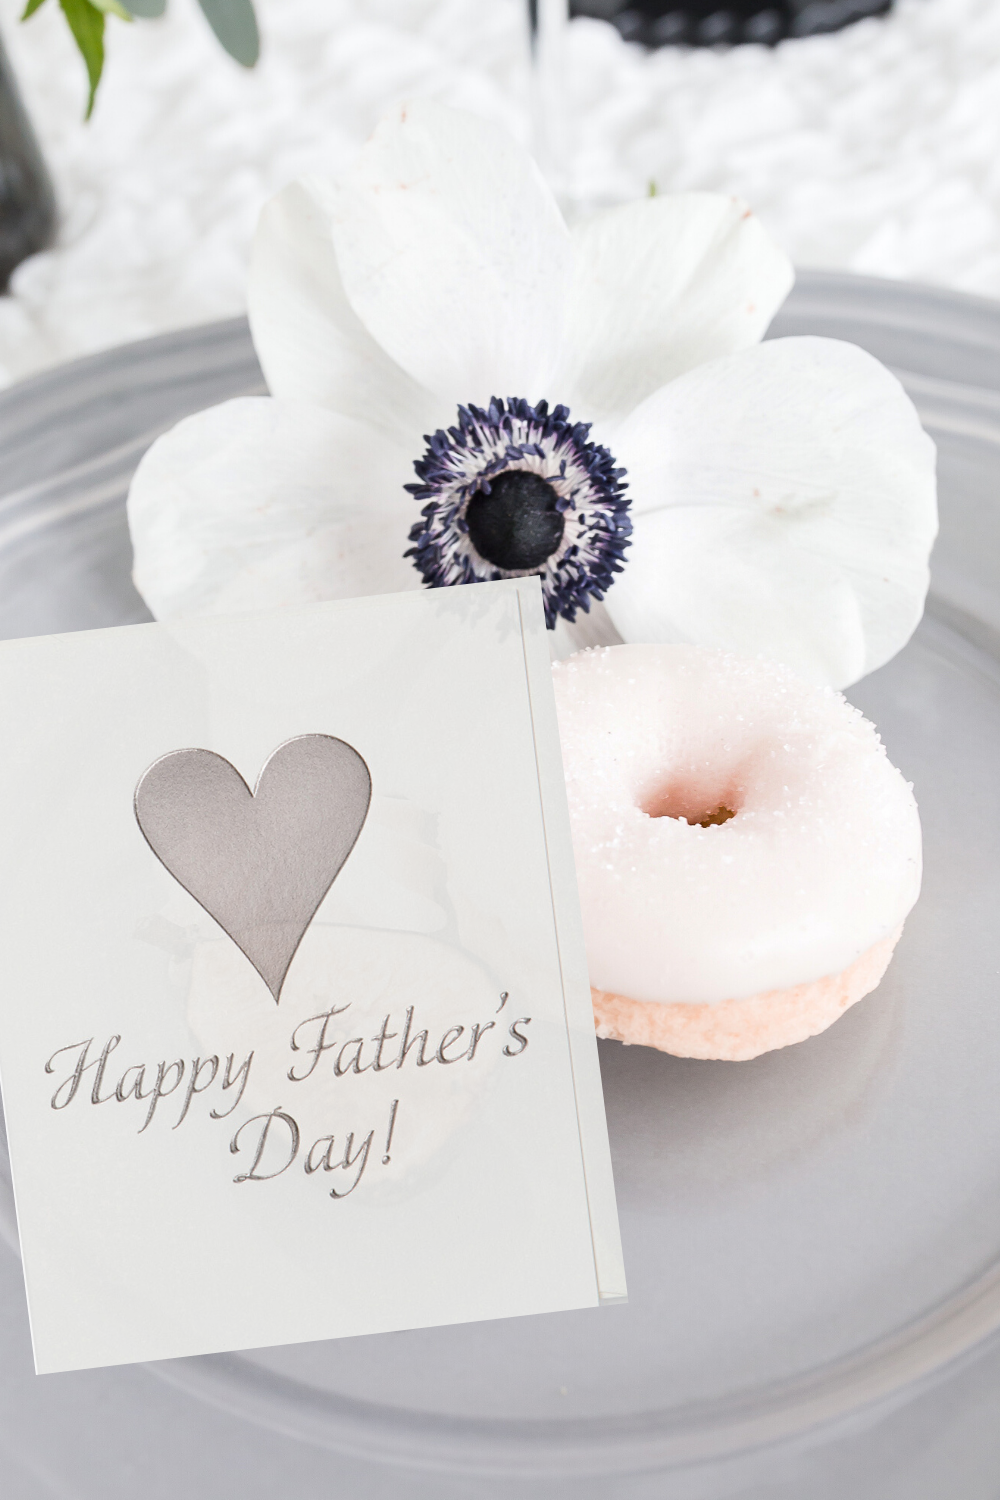 show your love to dad on father's day with this classic